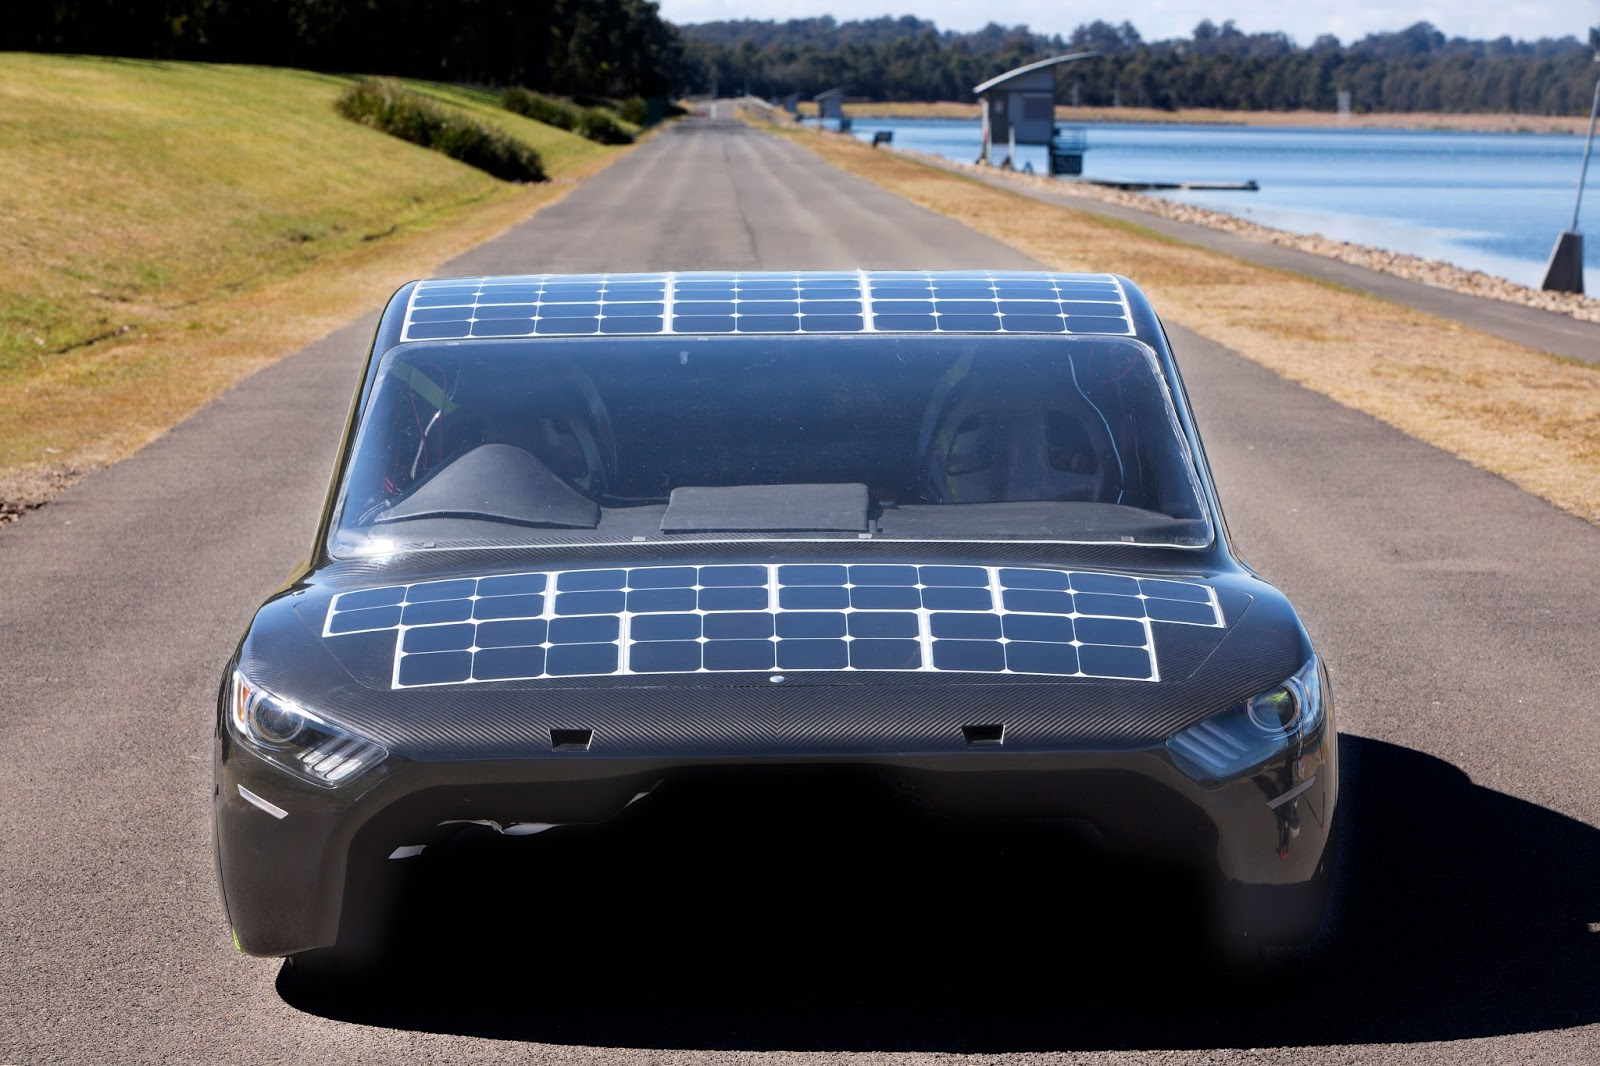 """solar car With the prices of solar and electric vehicle (ev) batteries predicted to continue falling even as the cost of fossil fuels rises, many industry experts — including tony seba, author of """"solar trillions"""" — are forecasting the inevitable rise of solar power in consumer and industrial markets ."""